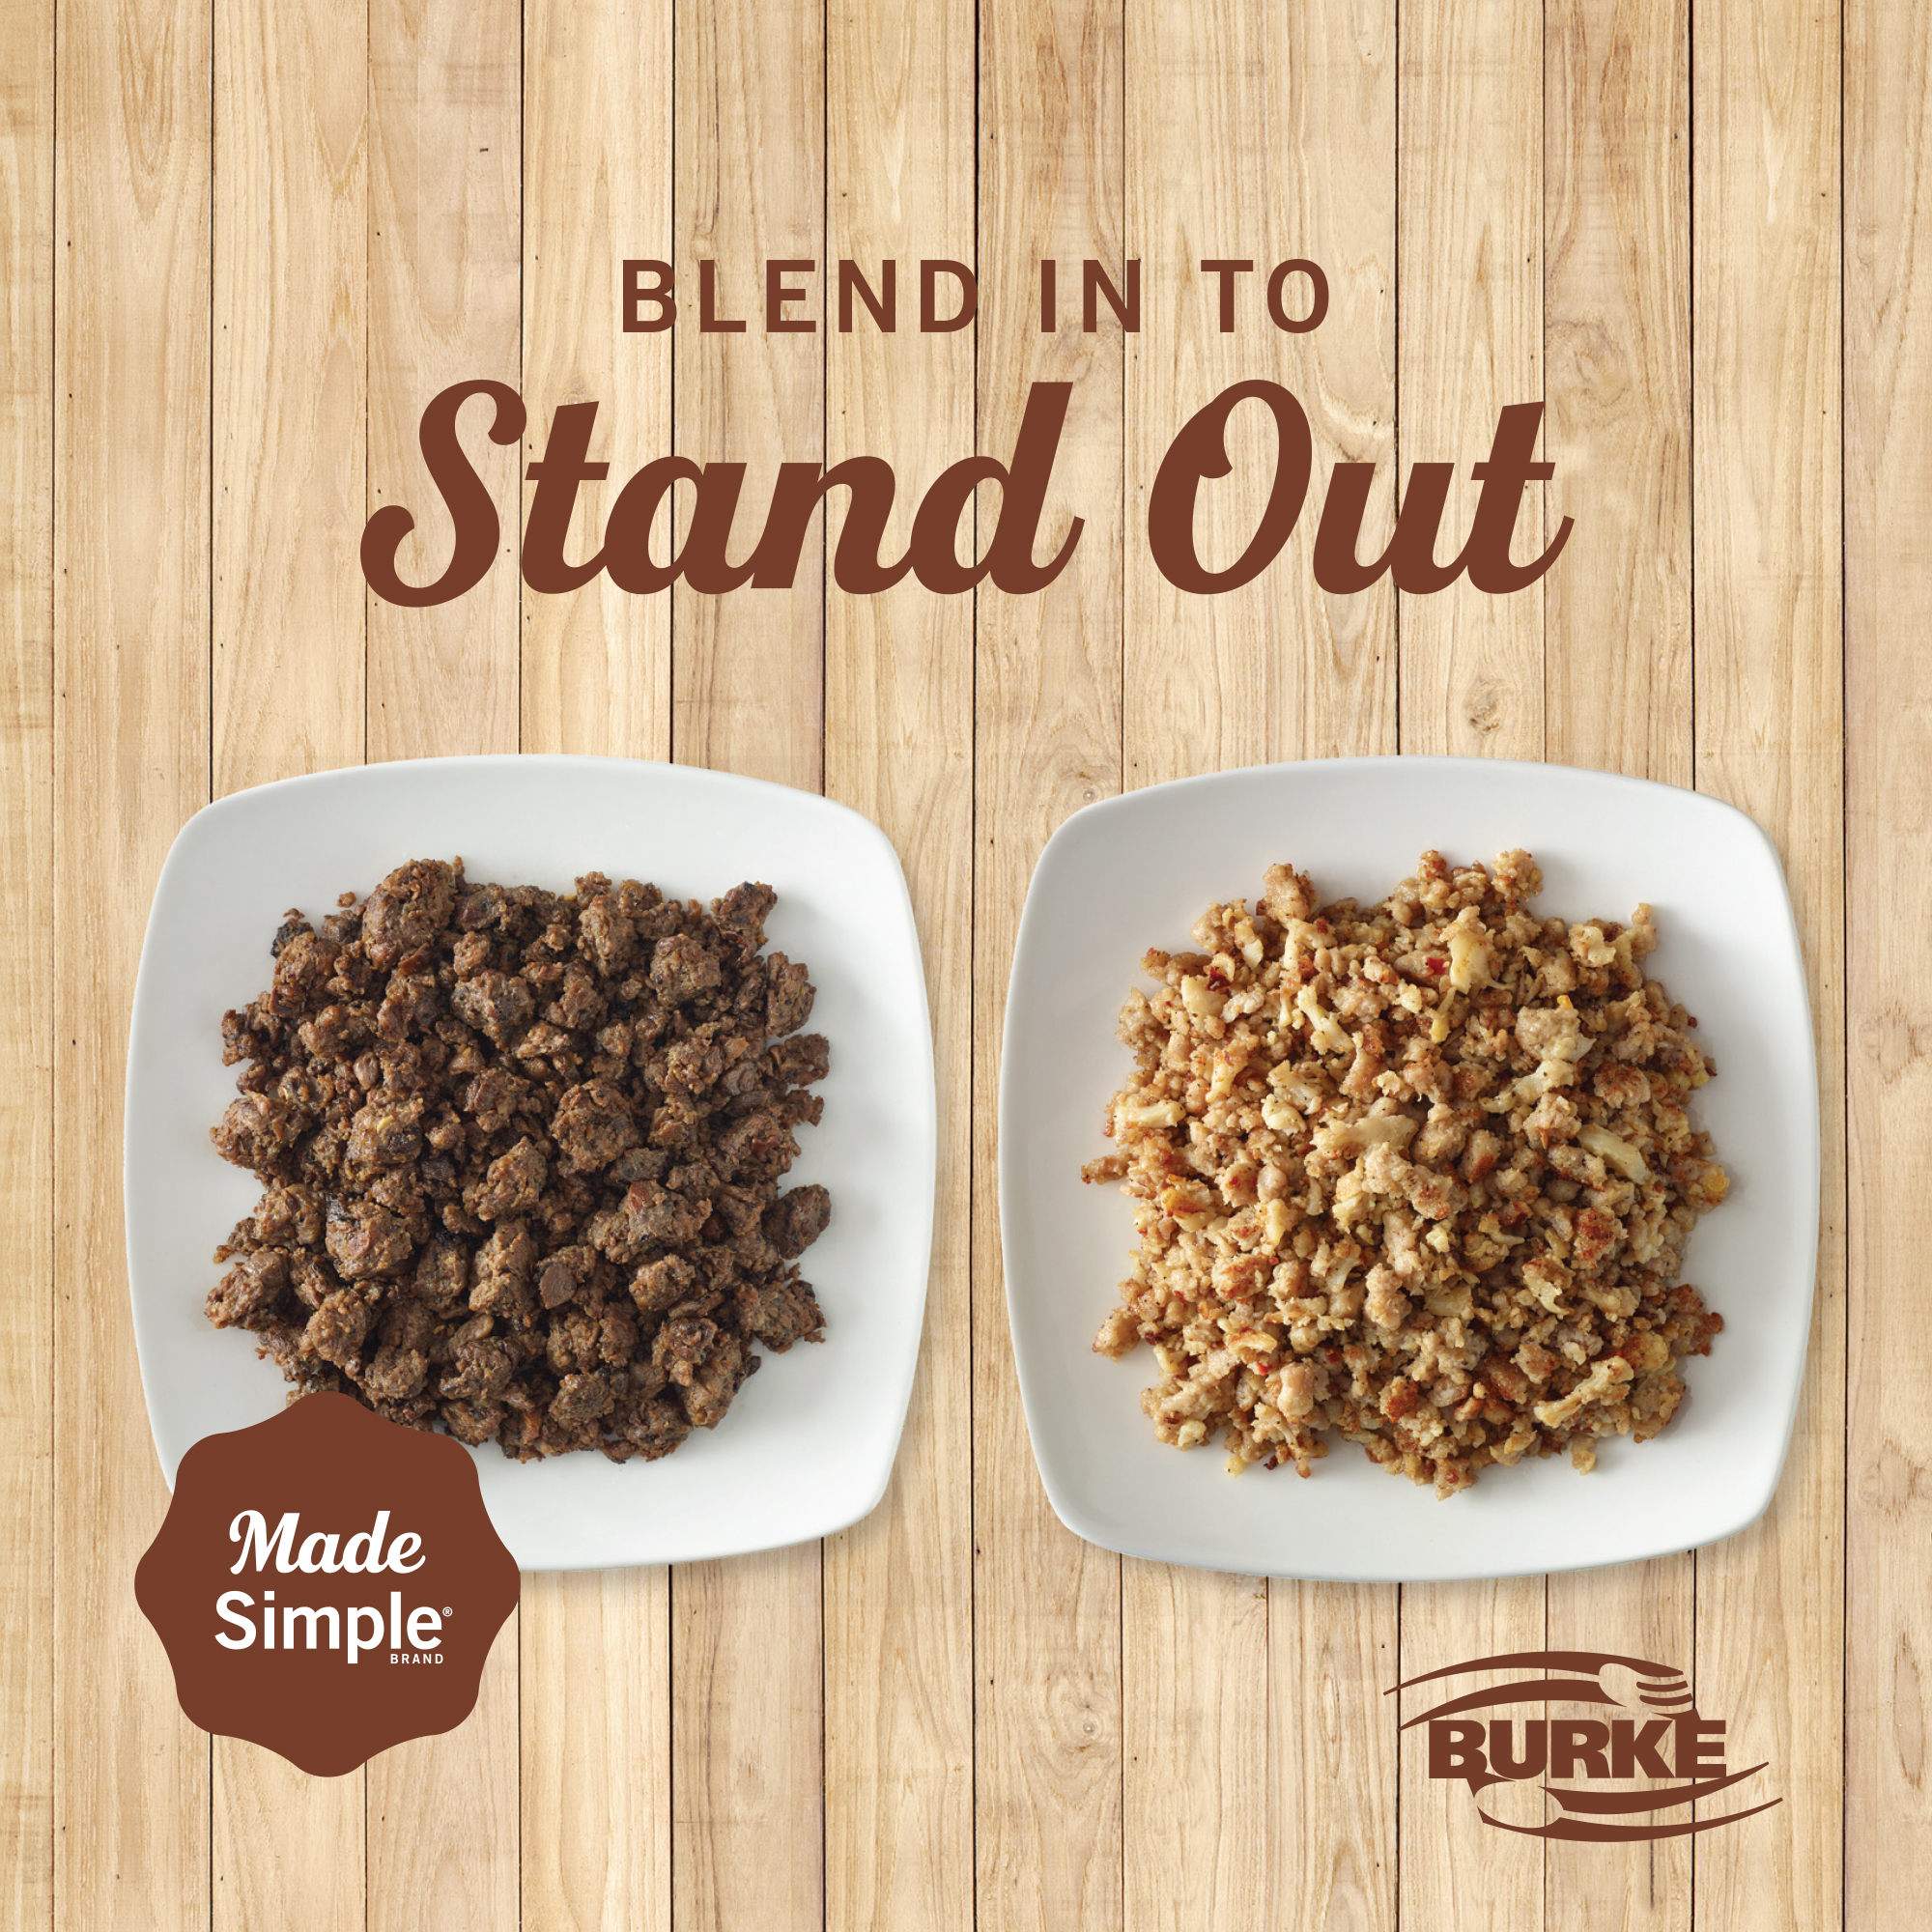 Burke Blend in to Stand out, overhead shot of MADE SIMPLE products in two bowls